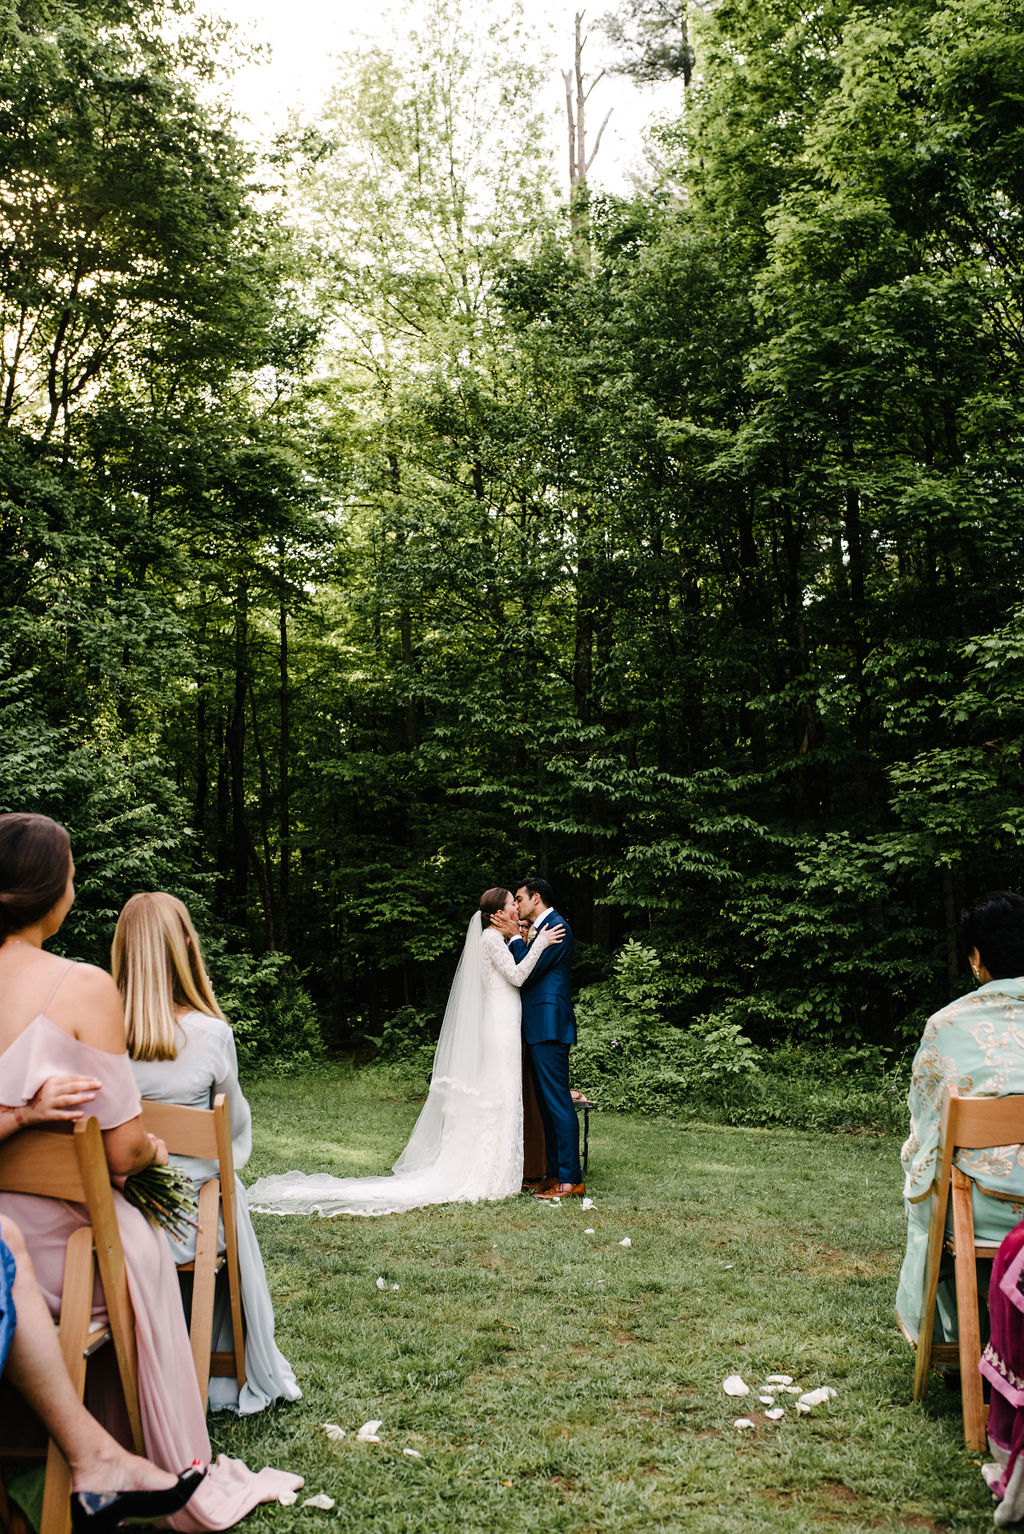 agpcollective_colleenandanil_foxfiremountainhouse_wedding-9777.jpg